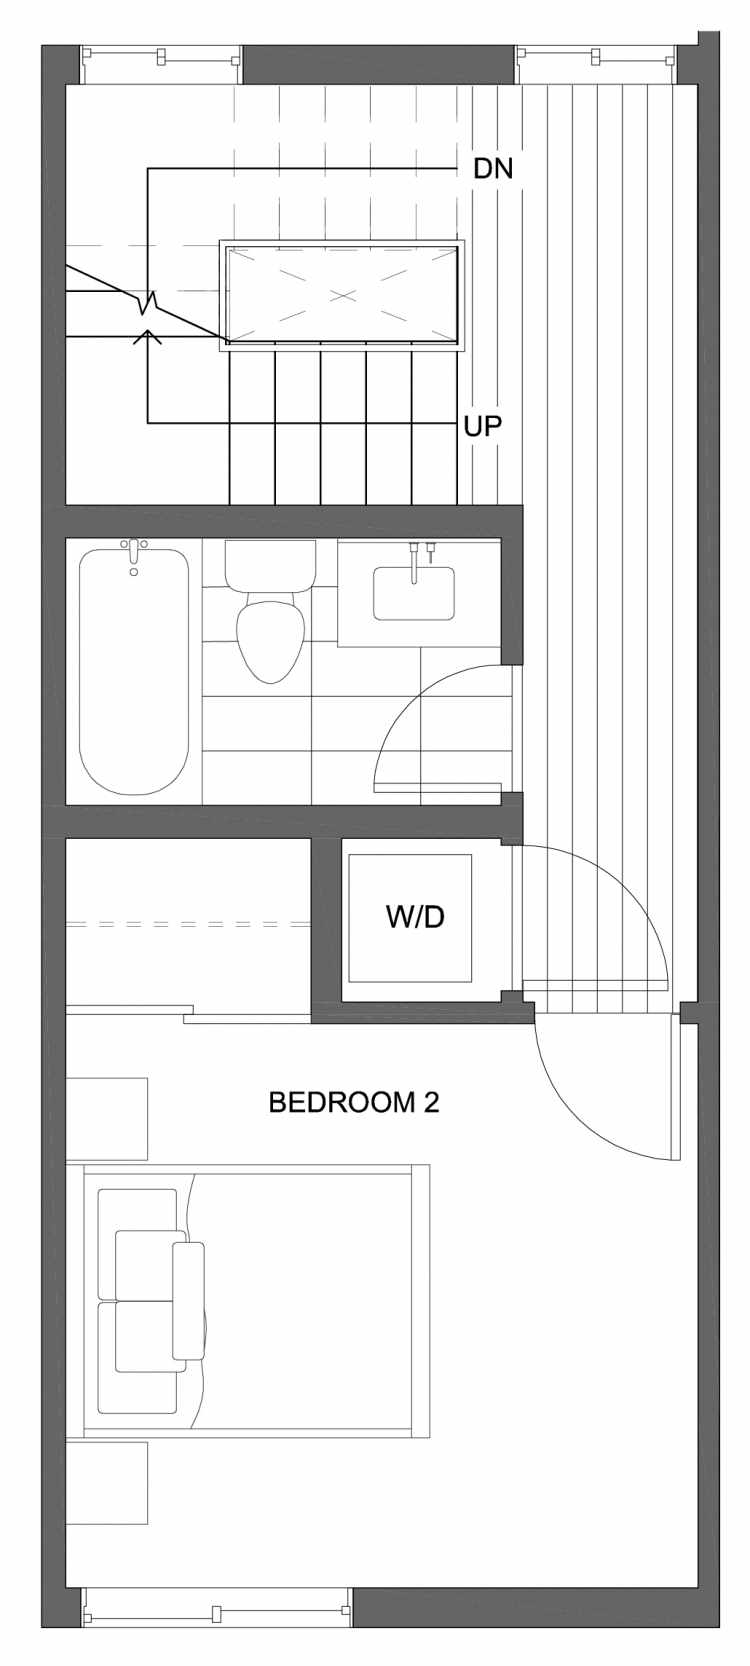 Second Floor Plan of 10429B Alderbrook Pl NW, One of the Jasmine Townhomes in the Greenwood Neighborhood of Seattle